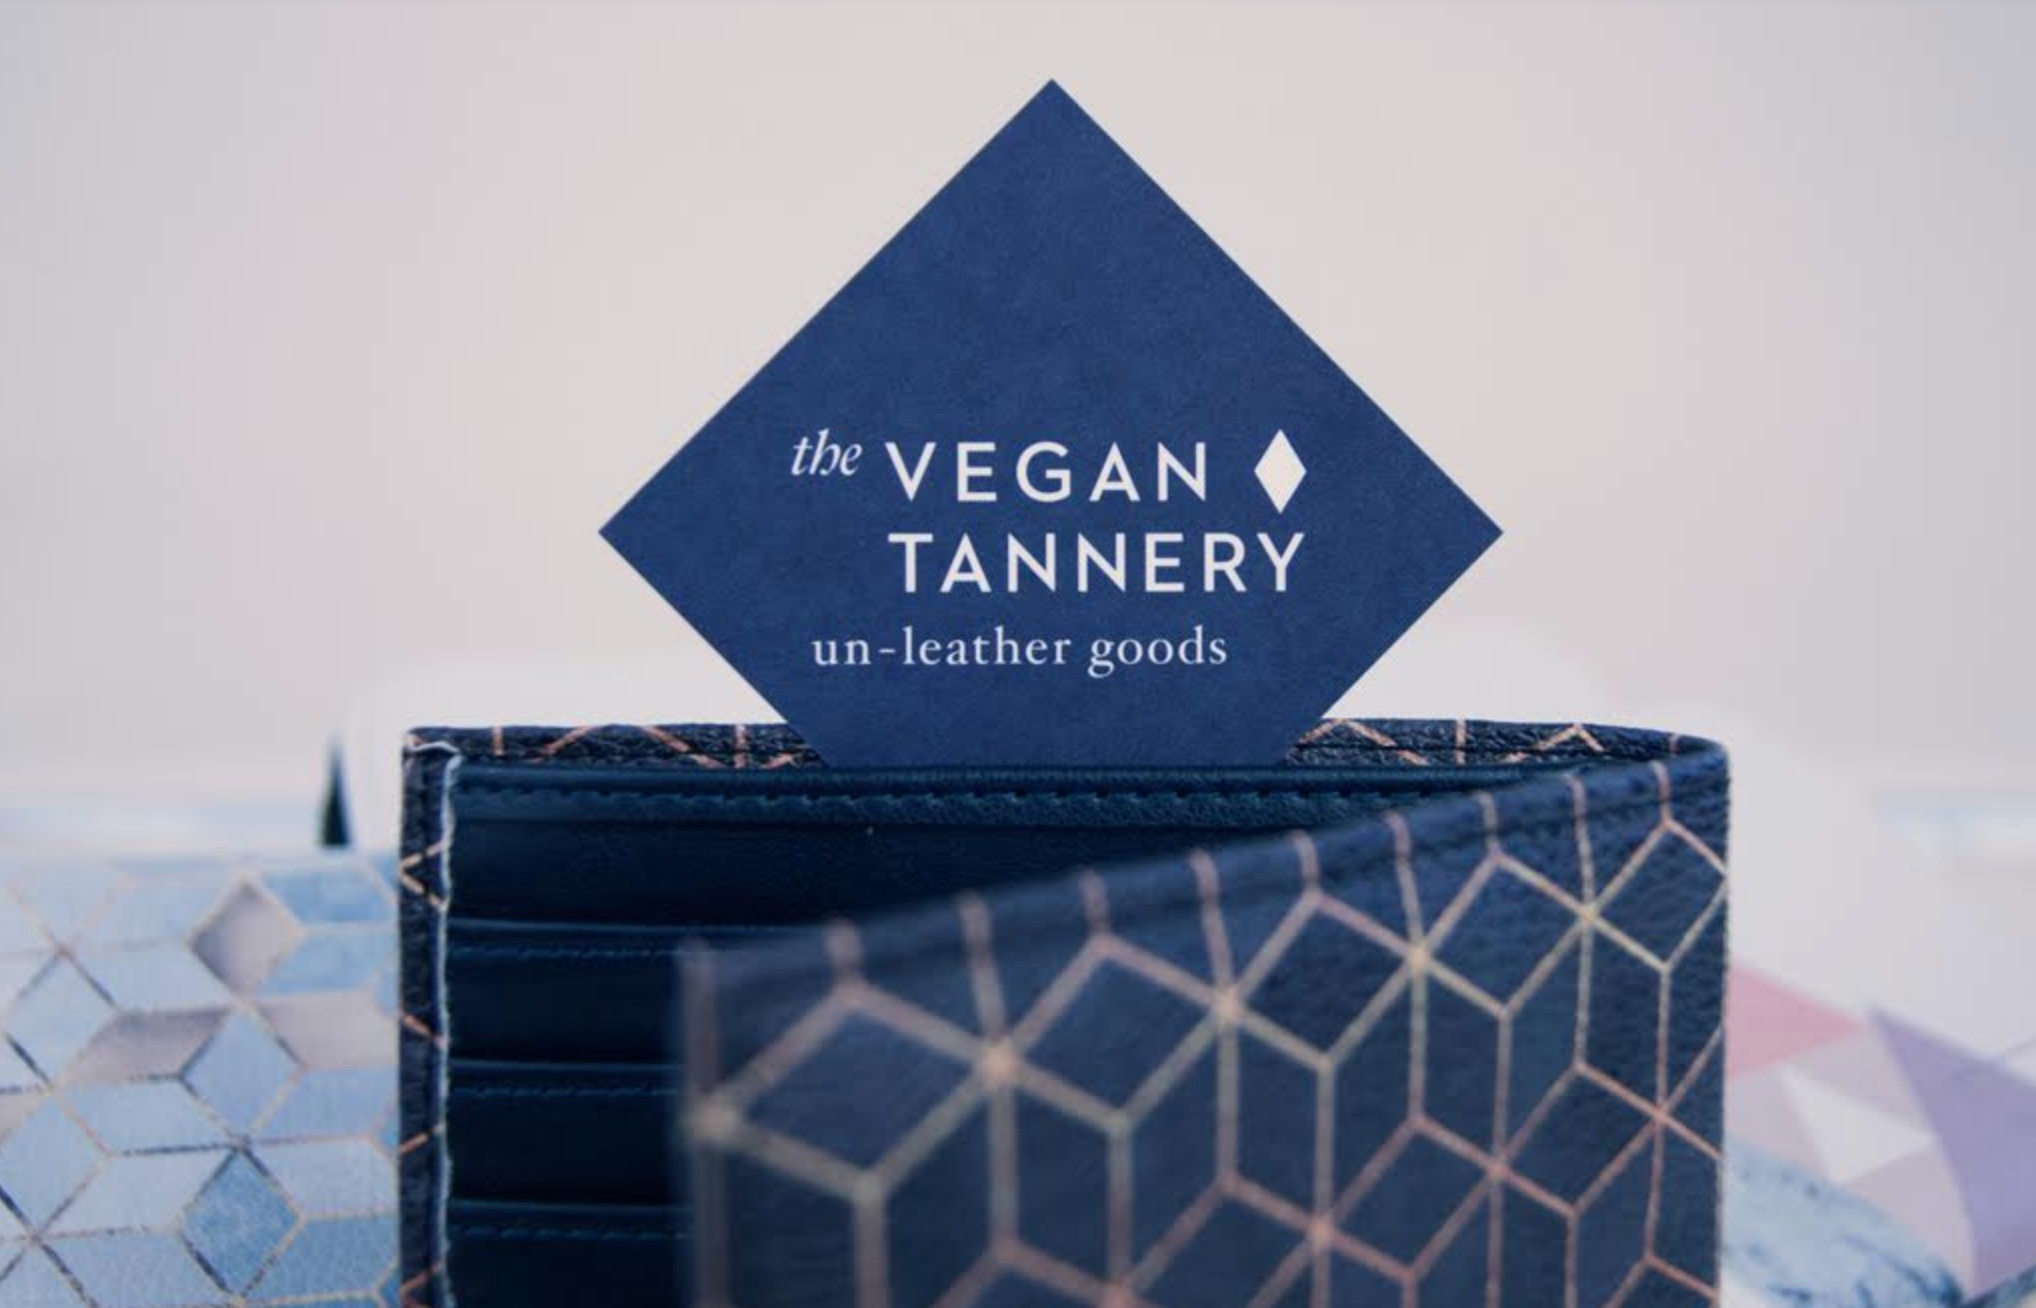 A business card for the Vegan Tannery